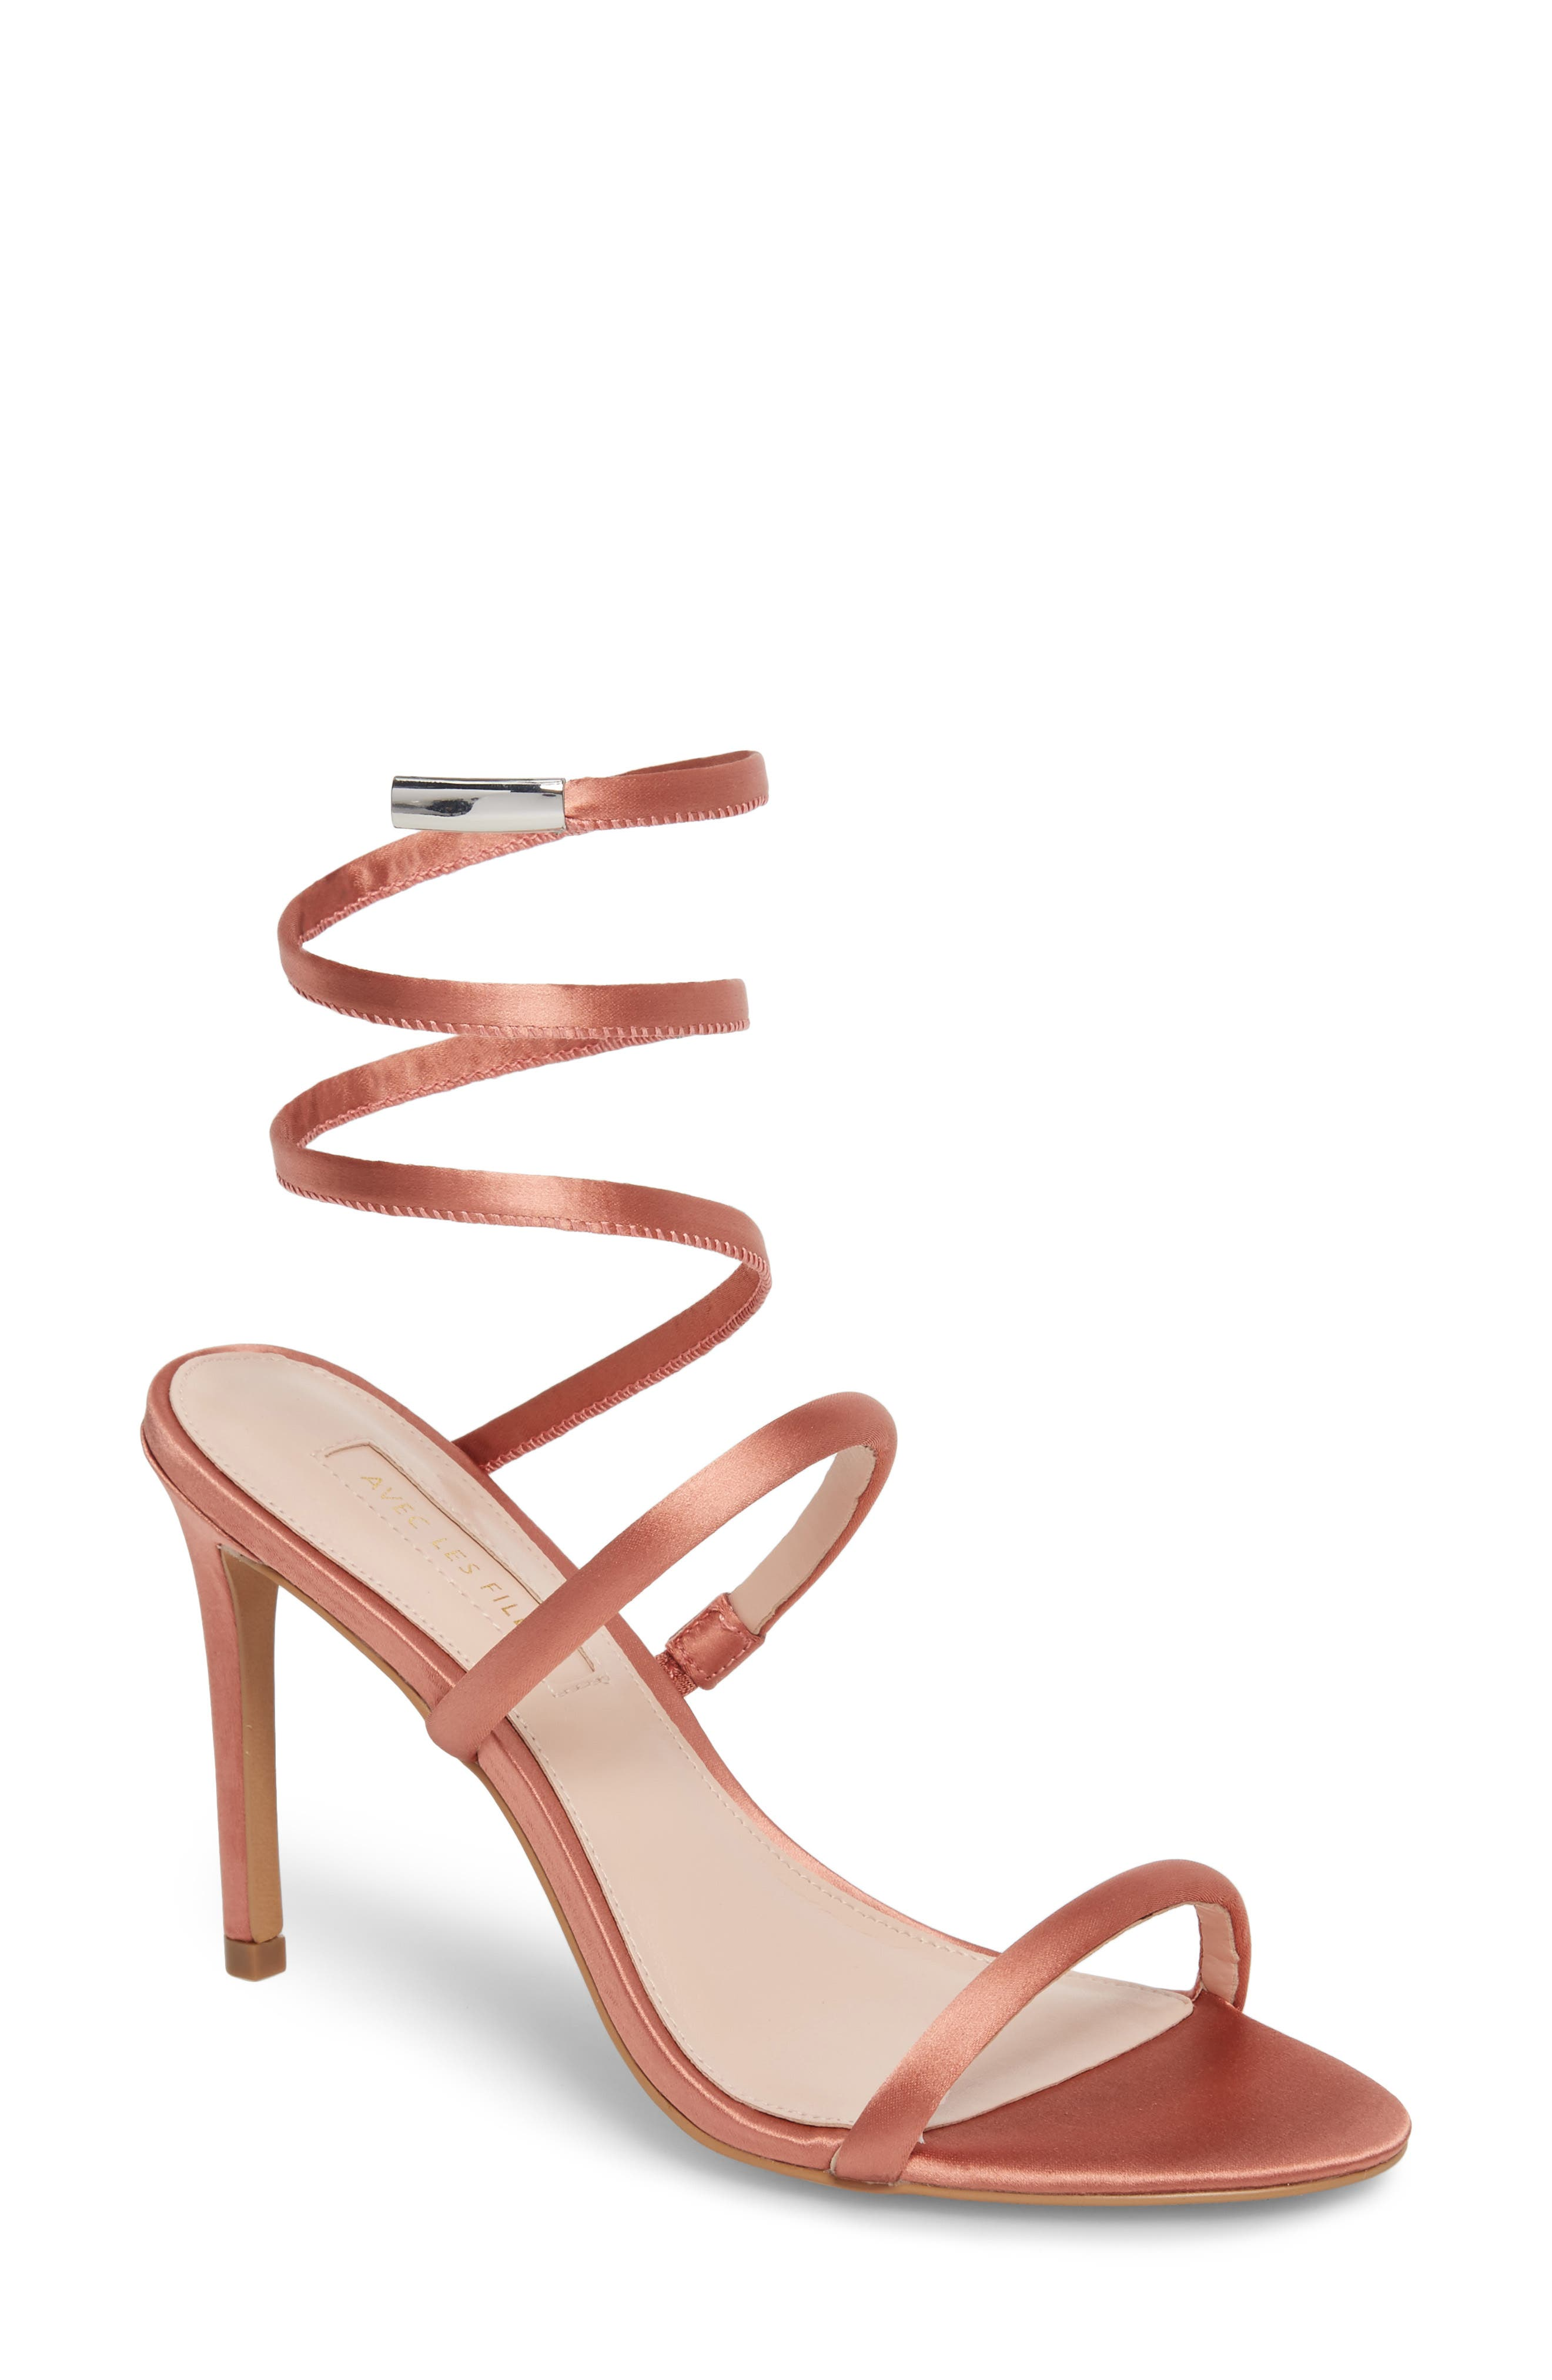 Joia Ankle Wrap Sandal,                             Main thumbnail 1, color,                             Dusty Rose Fabric